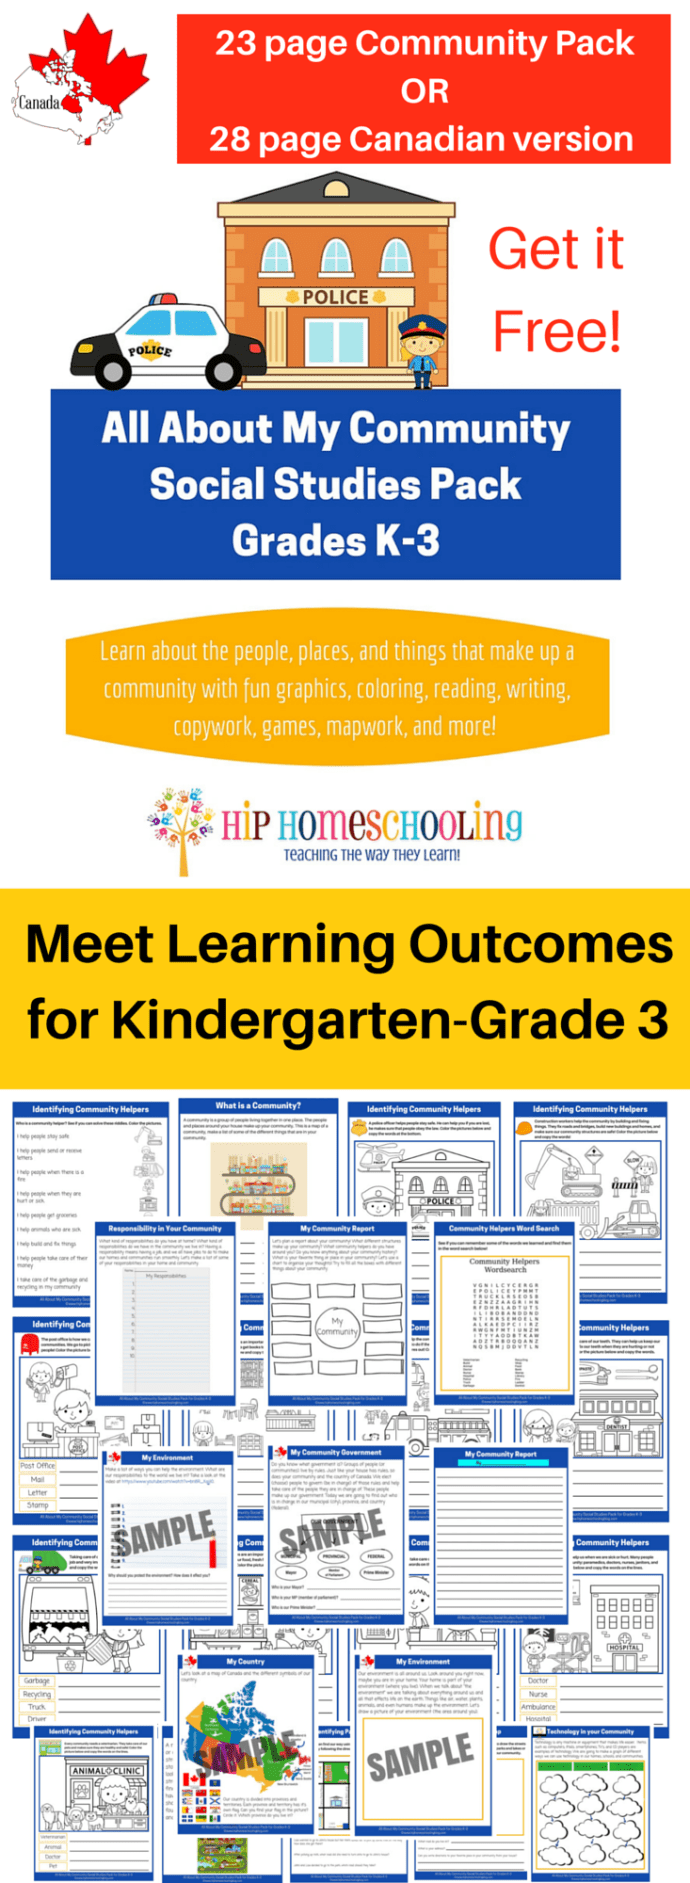 All About My Community Social Studies K-3 Printable Pack - Would be great little kids!